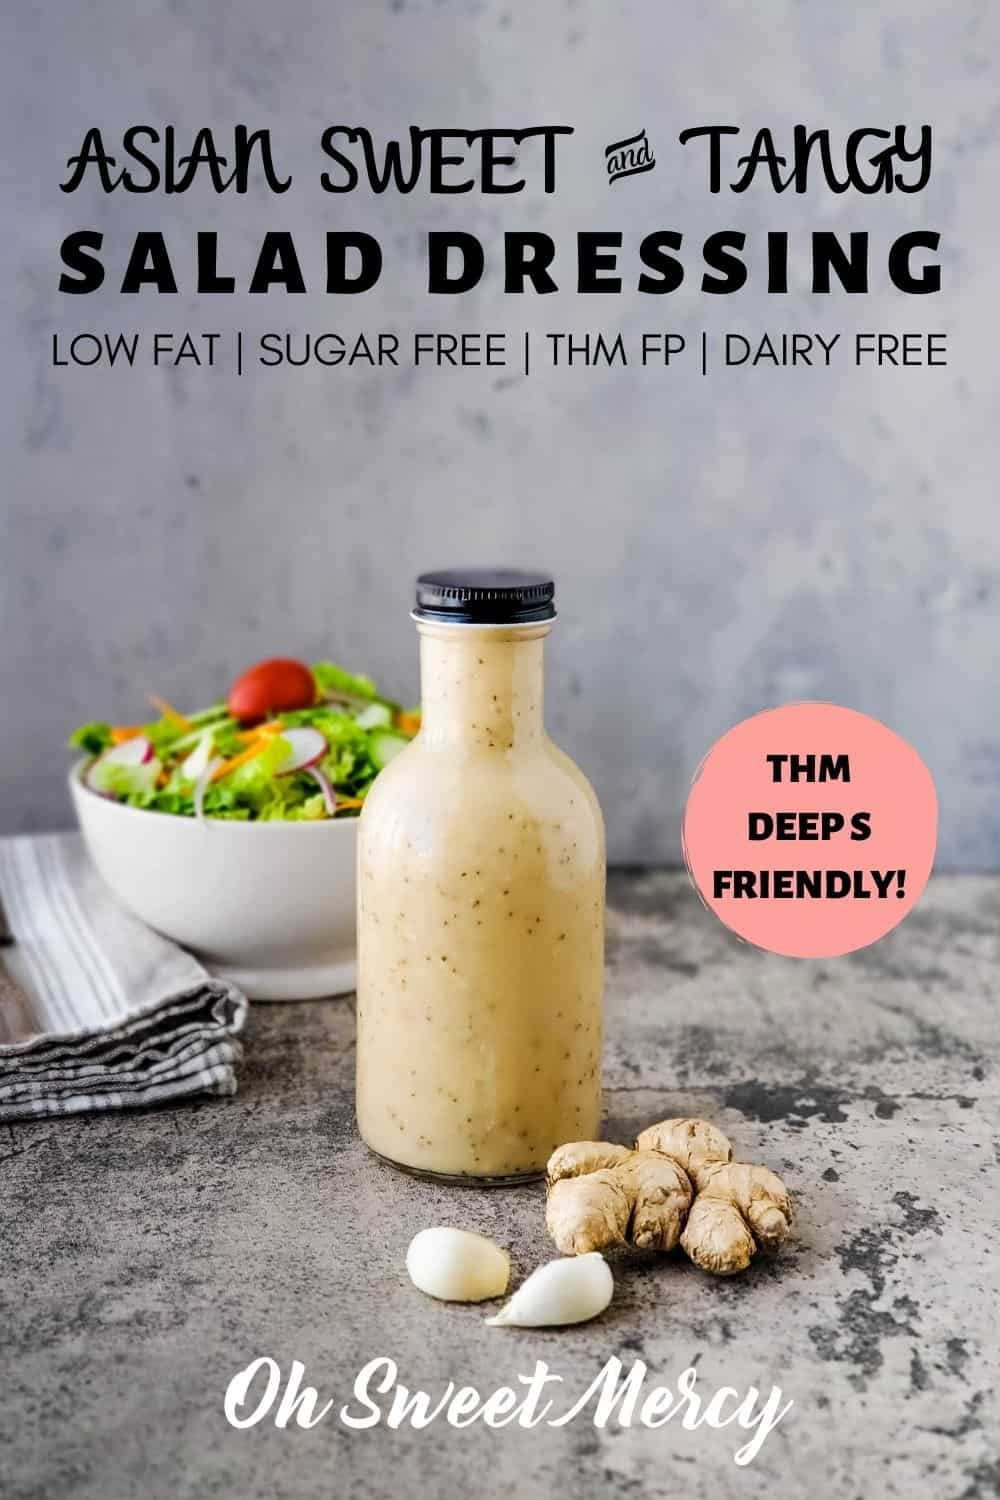 My Asian Sweet and Tangy Salad Dressing is low fat but packs a flavor punch! It's a THM FP and also Deep S friendly! Dairy and egg free. Delicious as a low fat dressing for all kinds of salads as well as a marinade. #thm #saladdressings #lowfat #lowcarb #sugarfree #vegan #dairyfree #eggfree @ohsweetmercy